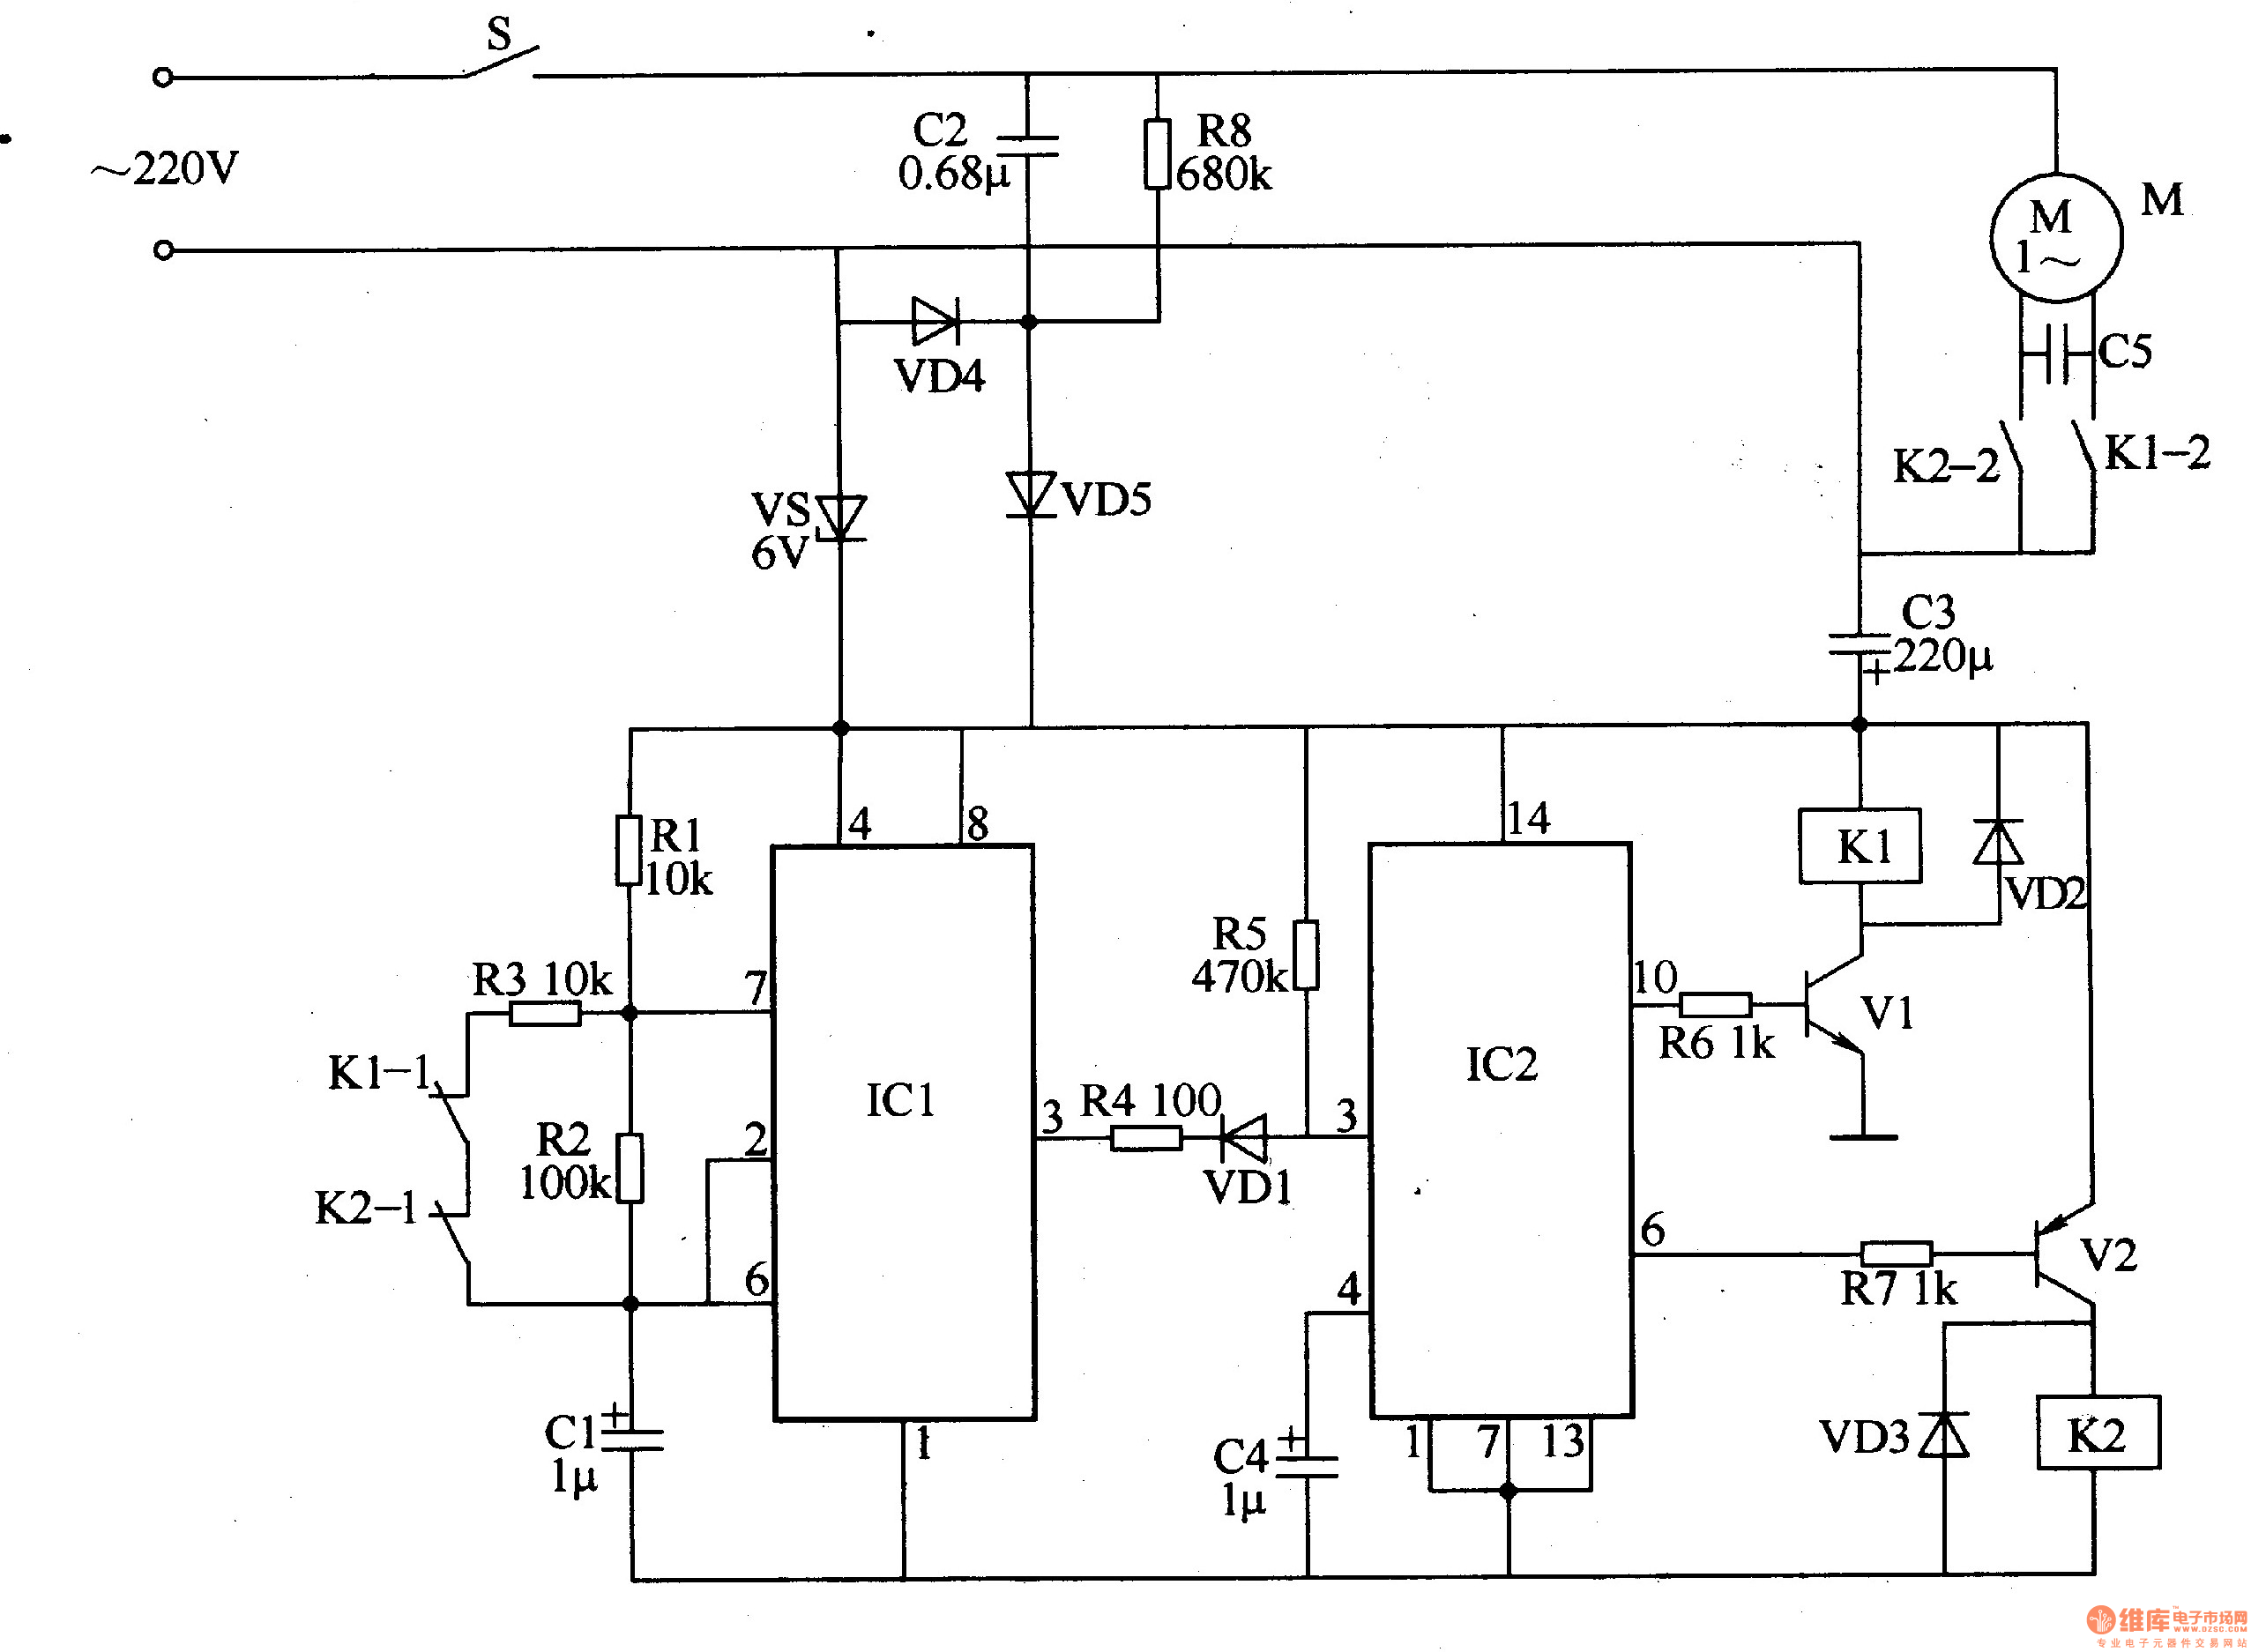 Washing machine electronic program controller ControlCircuit